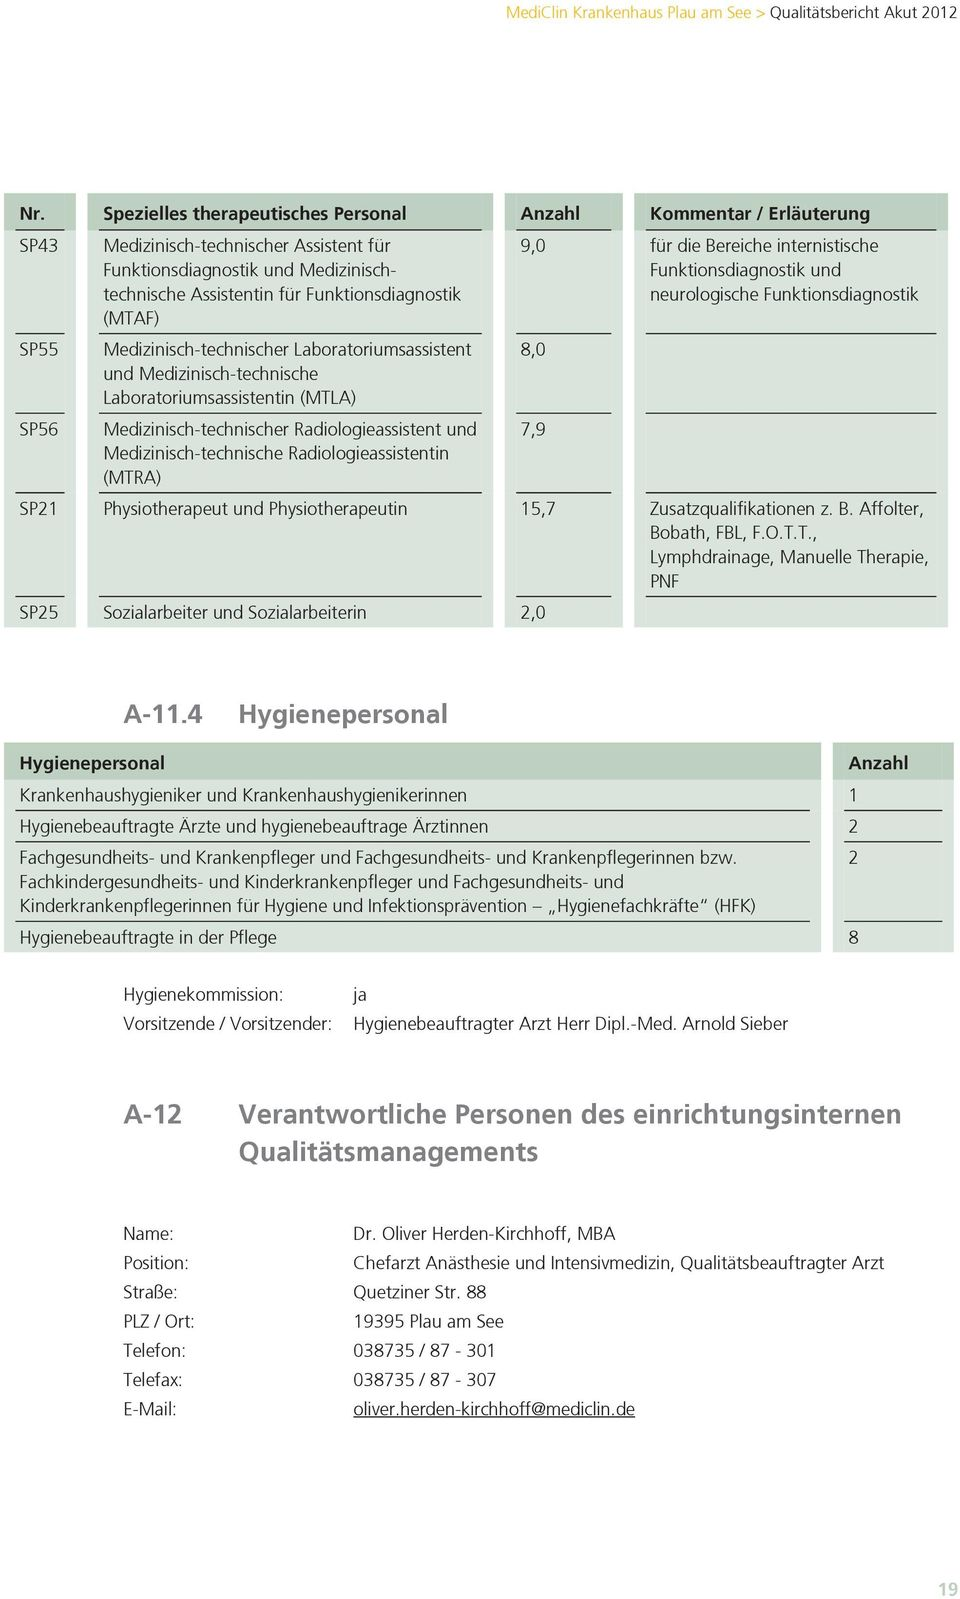 Medizinisch-technische Radiologieassistentin (MTRA) 9,0 für die Bereiche internistische Funktionsdiagnostik und neurologische Funktionsdiagnostik SP21 Physiotherapeut und Physiotherapeutin 15,7